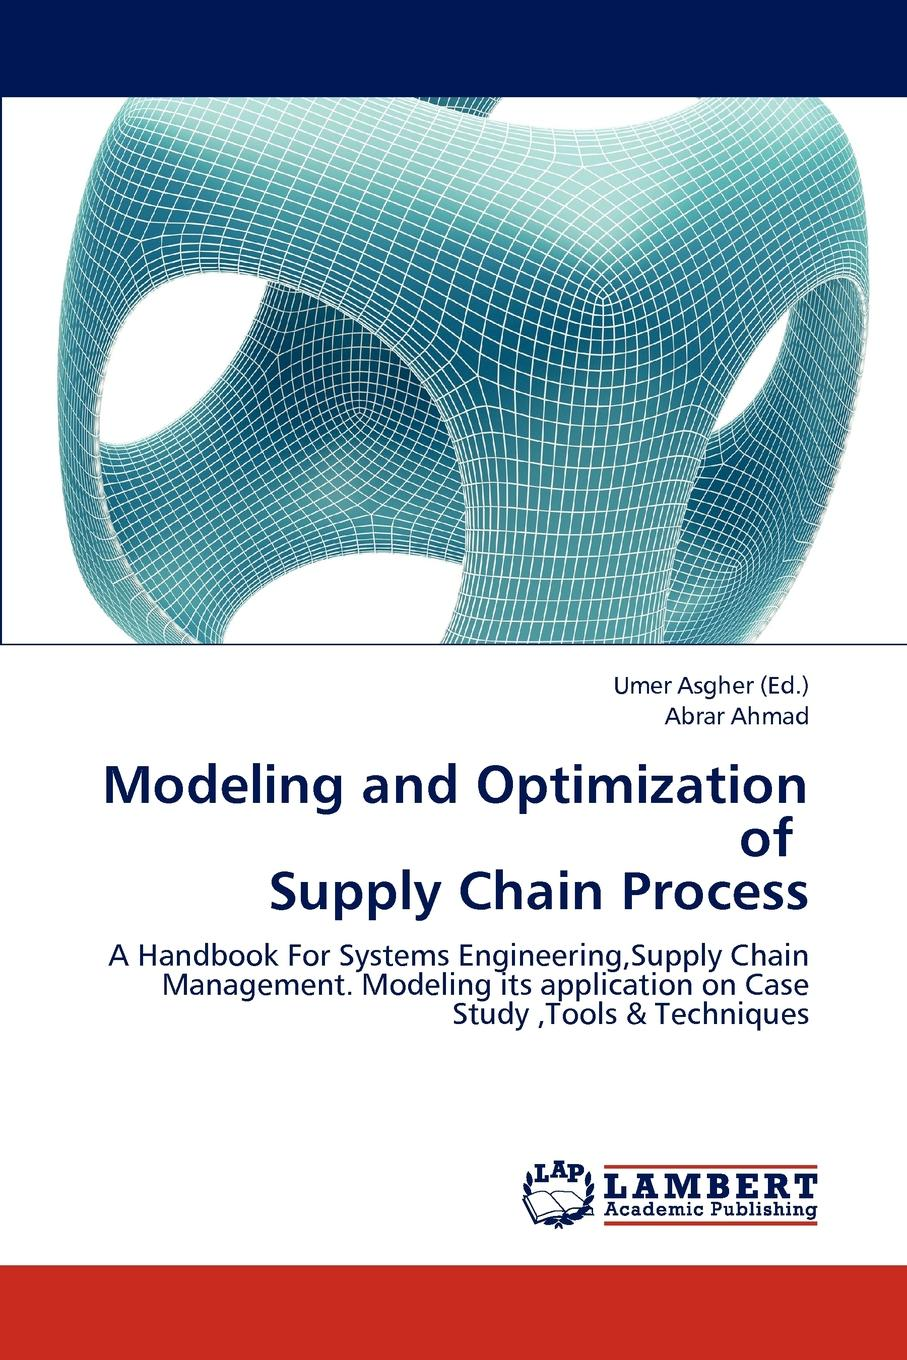 Ahmad Abrar Modeling and Optimization of Supply Chain Process georg baltes new perspectives on supply and distribution chain financing case studies from china and europe